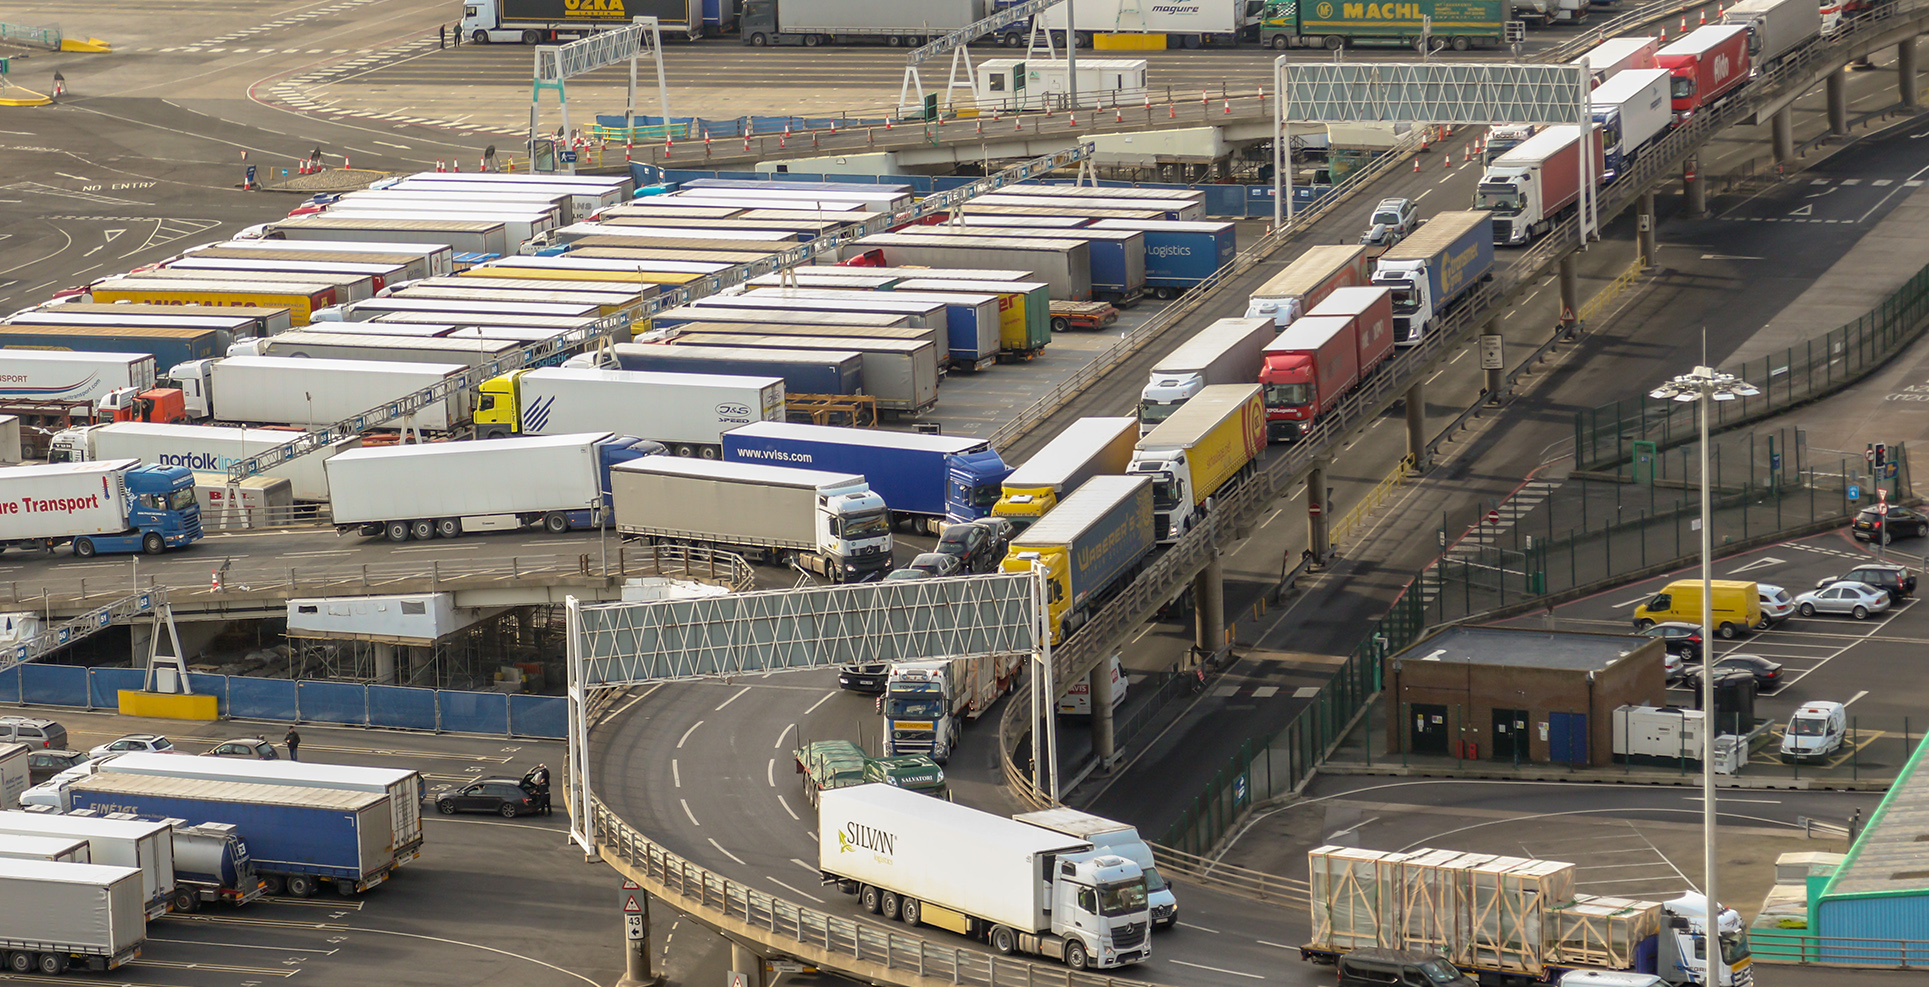 Hub - Brexit haulage logistics road transport regulation changes laws